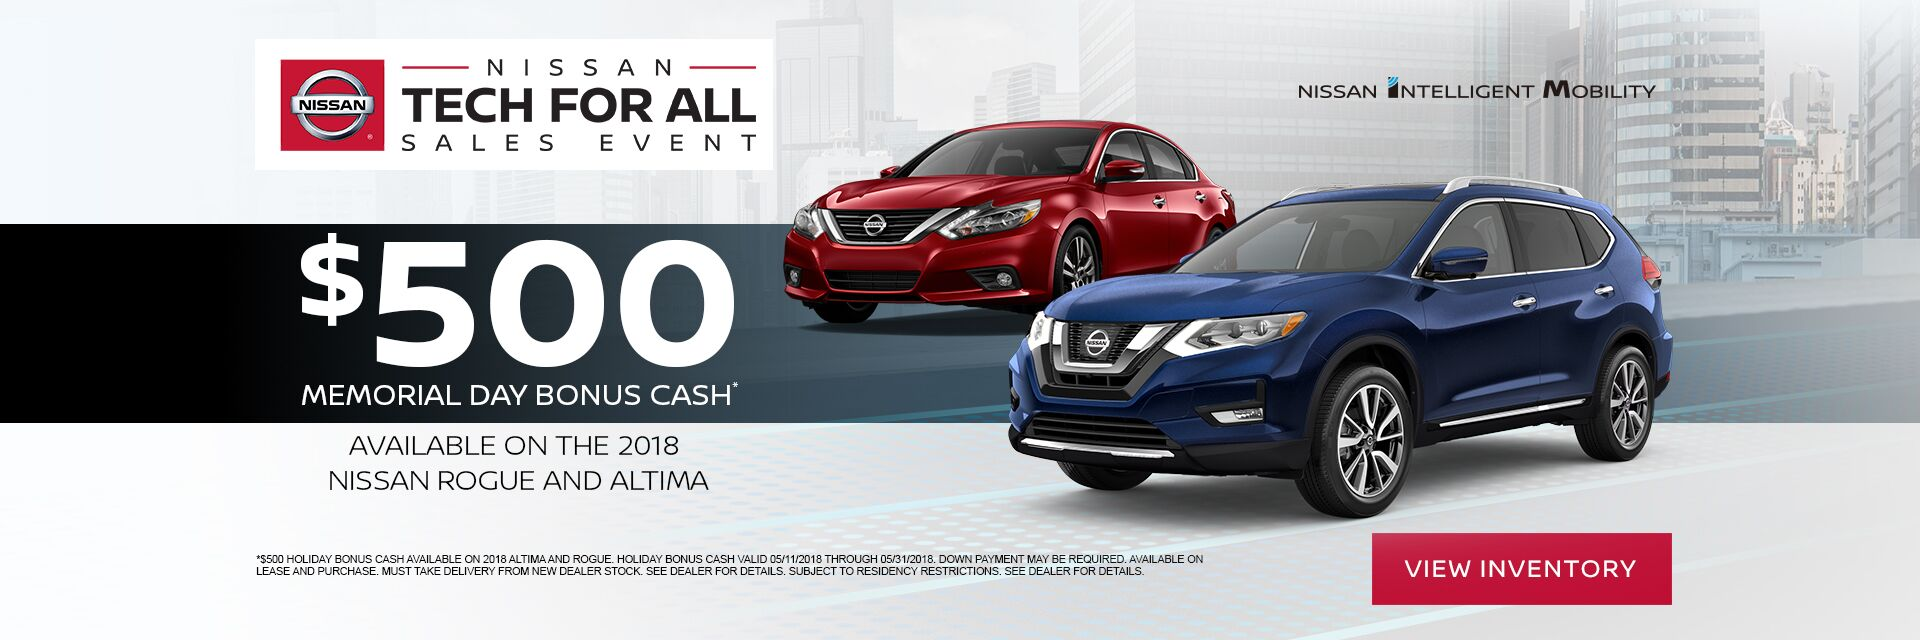 2018 Nissan Rogue and Altima Memorial Day Bonus Cash